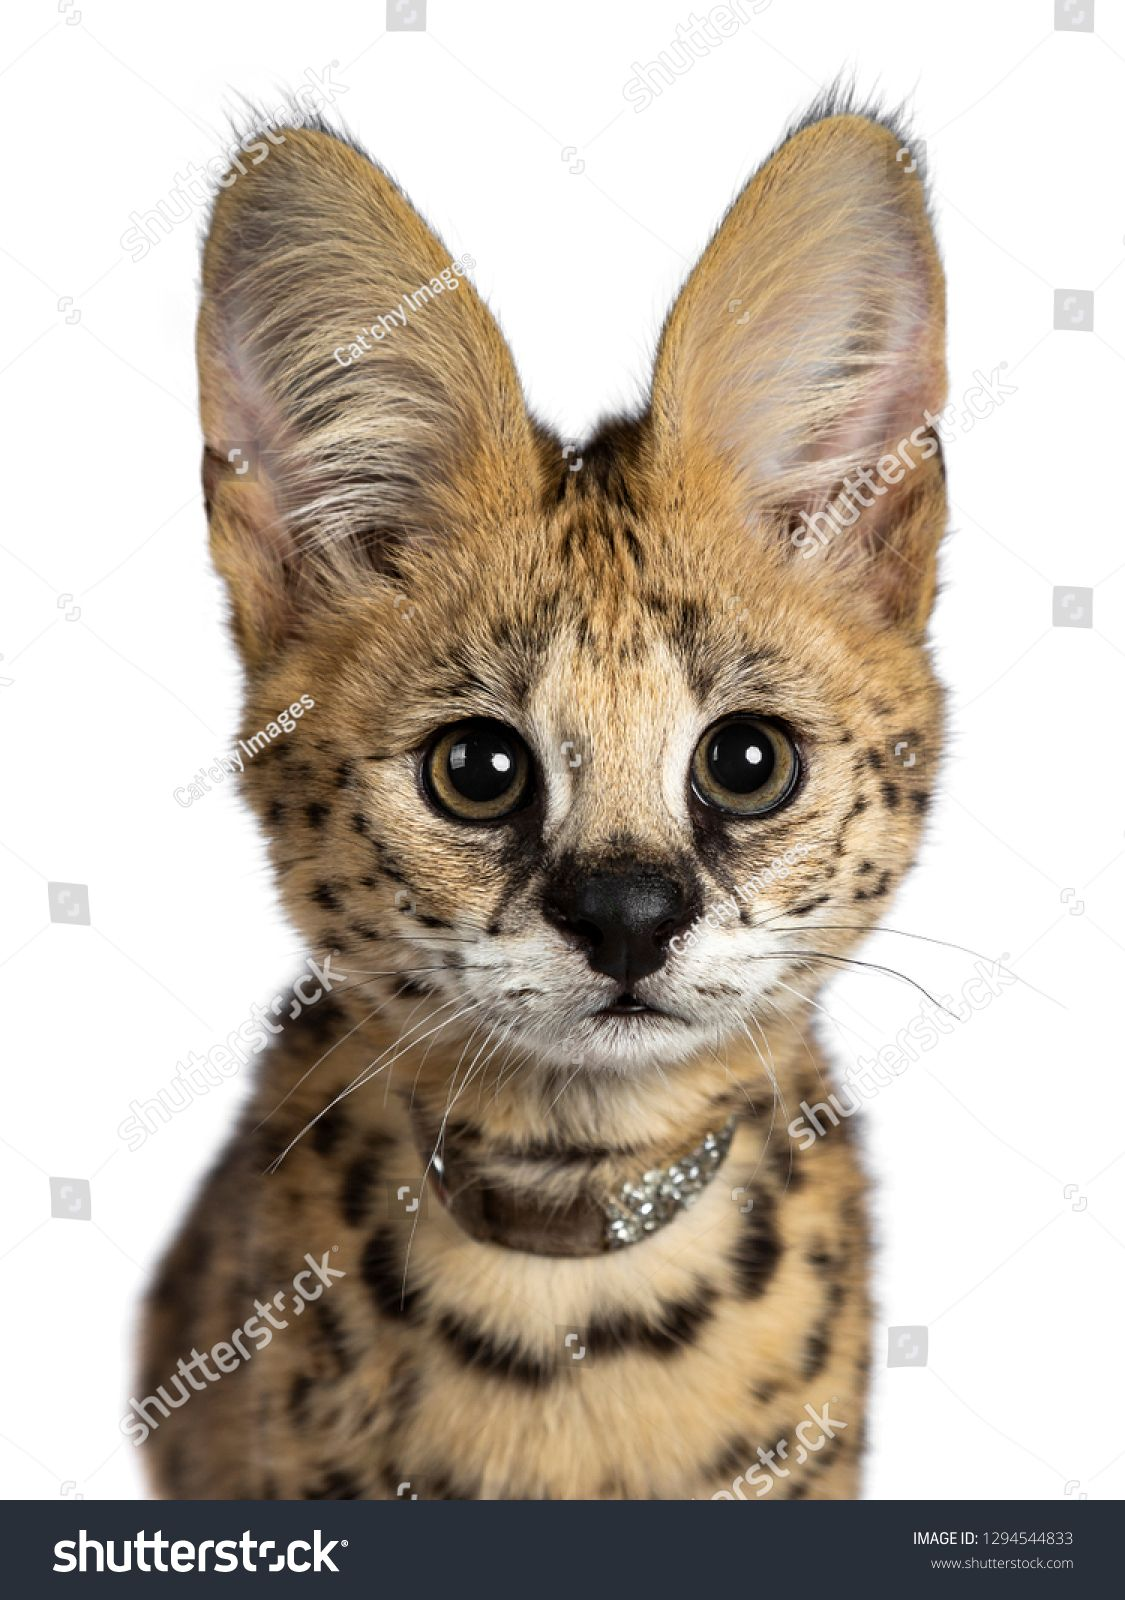 Head Shot Of Cute 4 Months Young Serval Cat Kitten Sitting Straight Up Wearing Shiny Collar Looking At Lens Wit Cats And Kittens Serval Cats Wildlife Animals